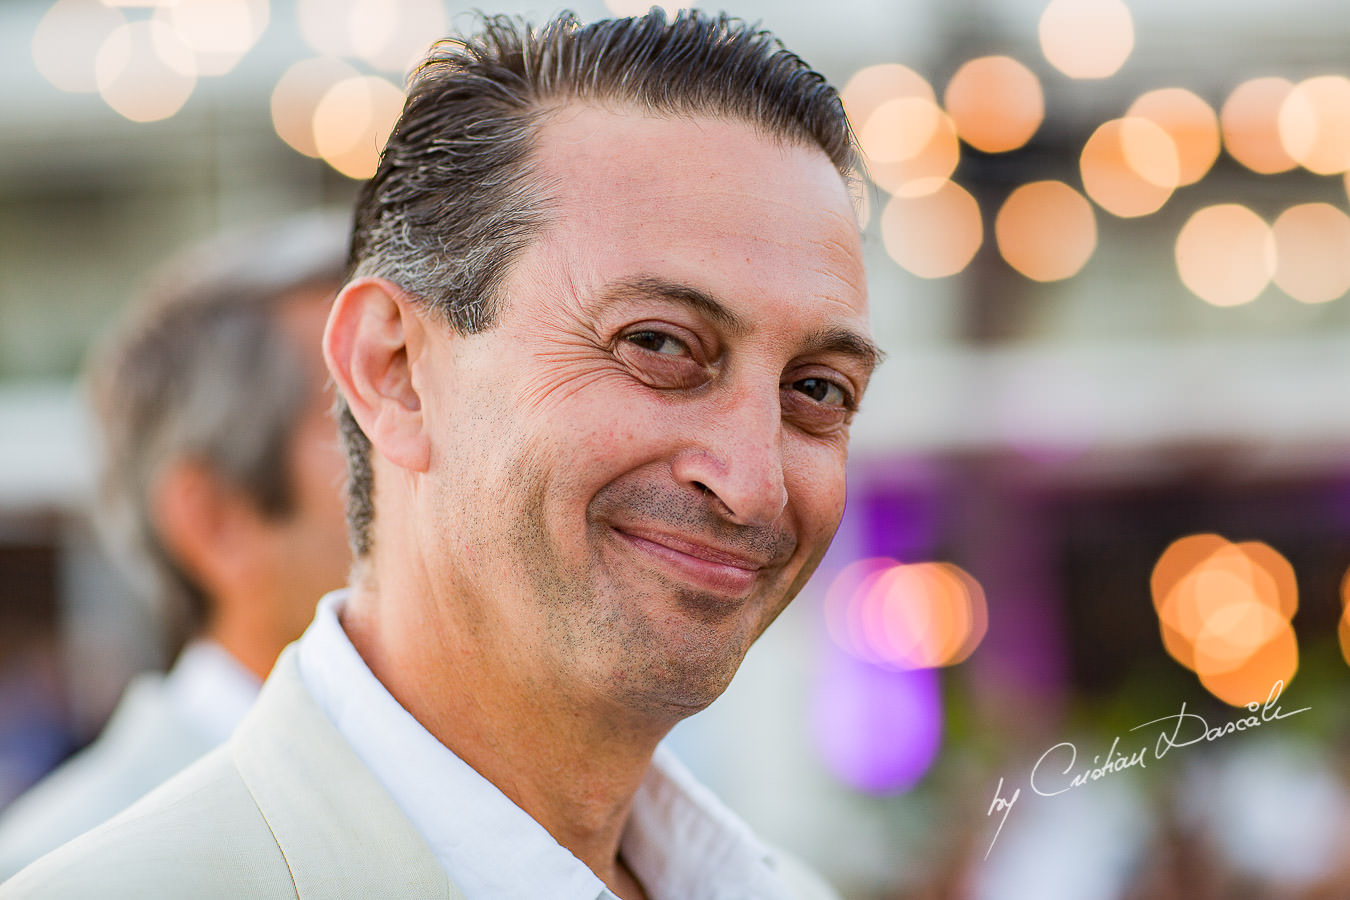 Portrait of the best man captured during a wedding photography at the Lighthouse Limassol, by Cyprus Photographer Cristian Dascalu.